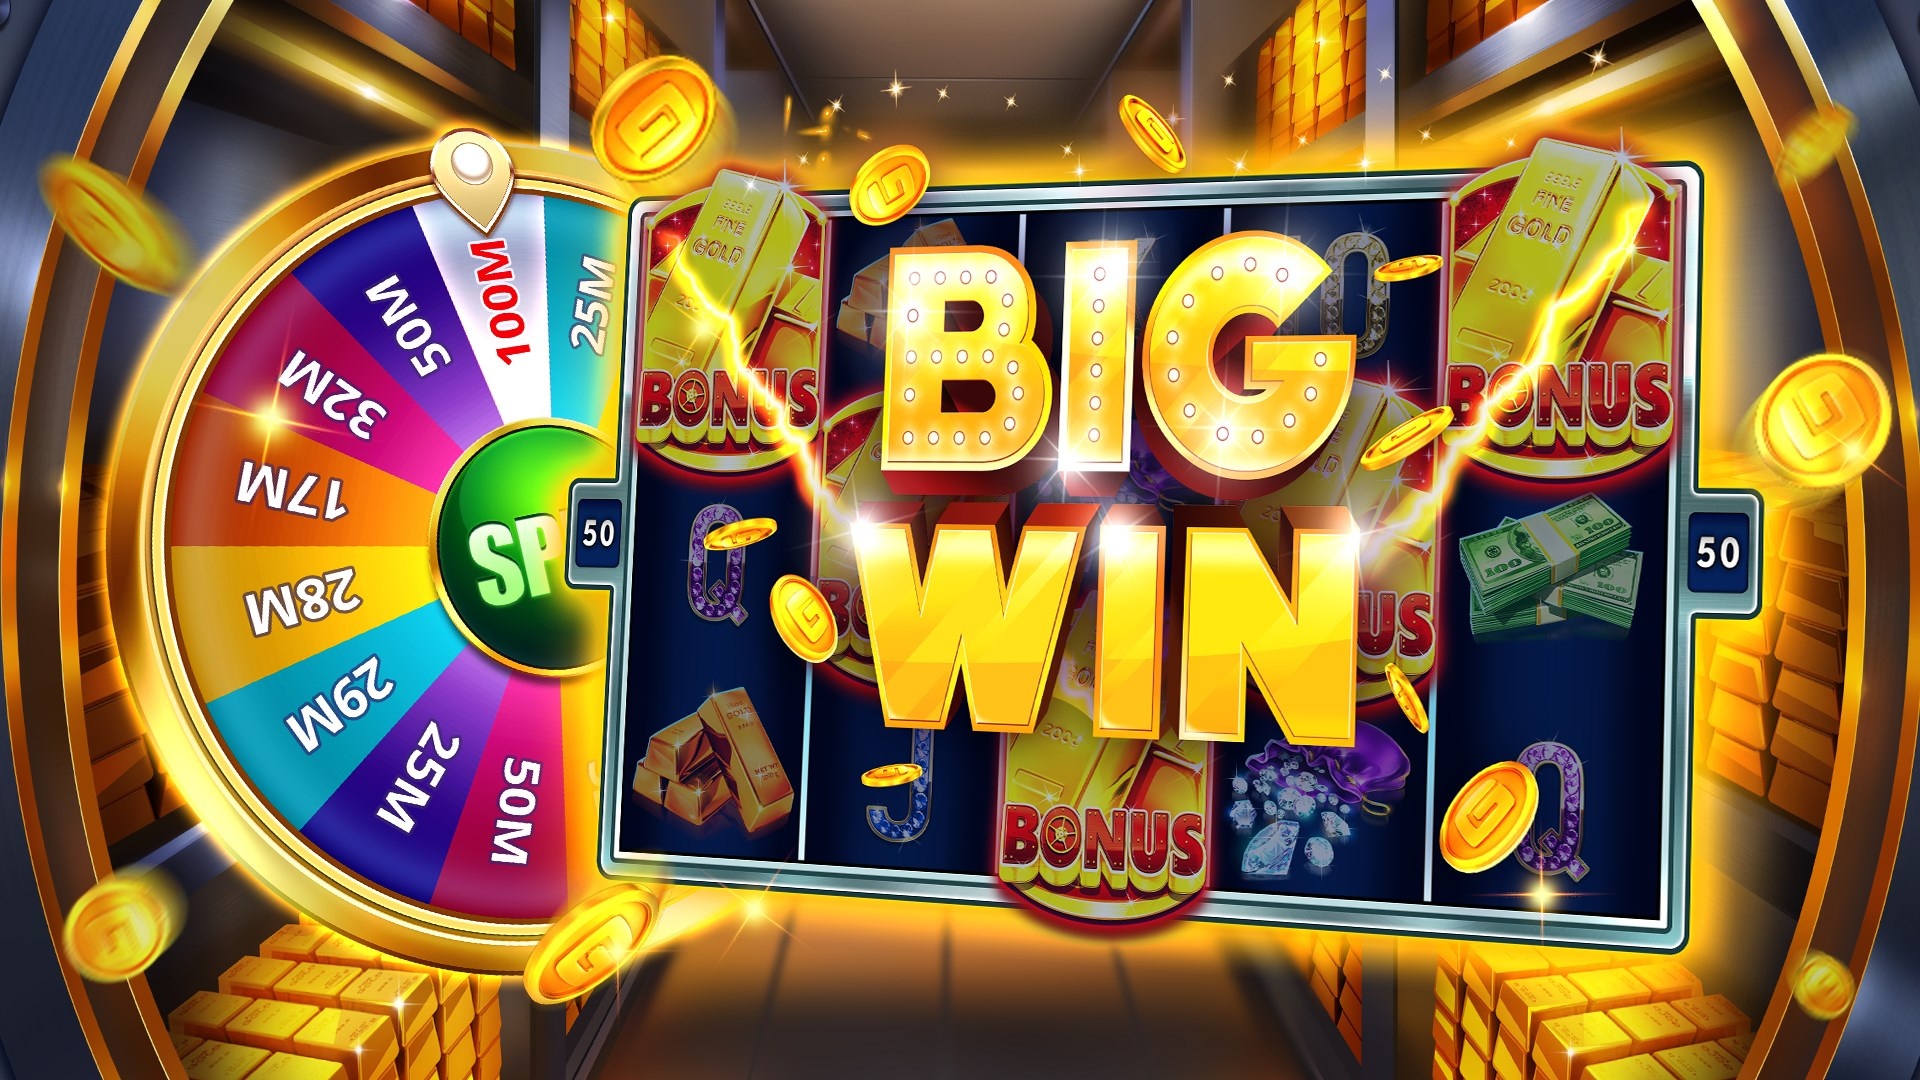 Slot And Others: Best Games To Play